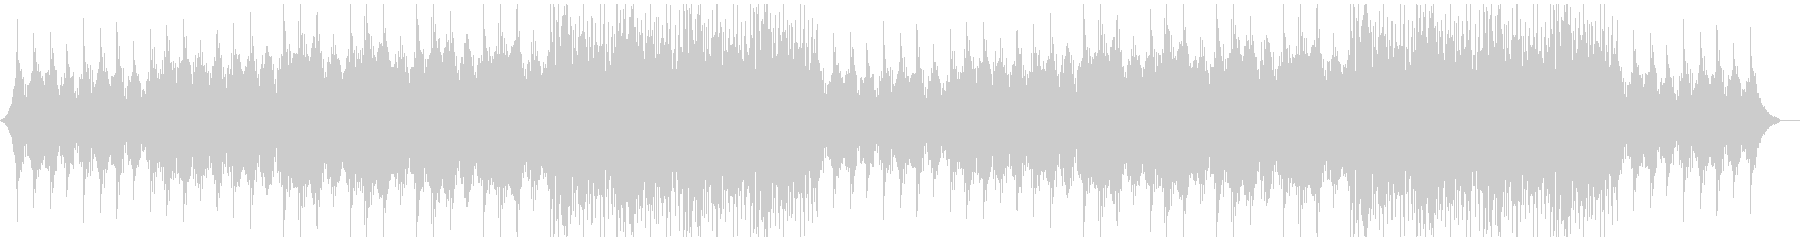 Positive and beautiful violin for school introductions's unreproduced waveform